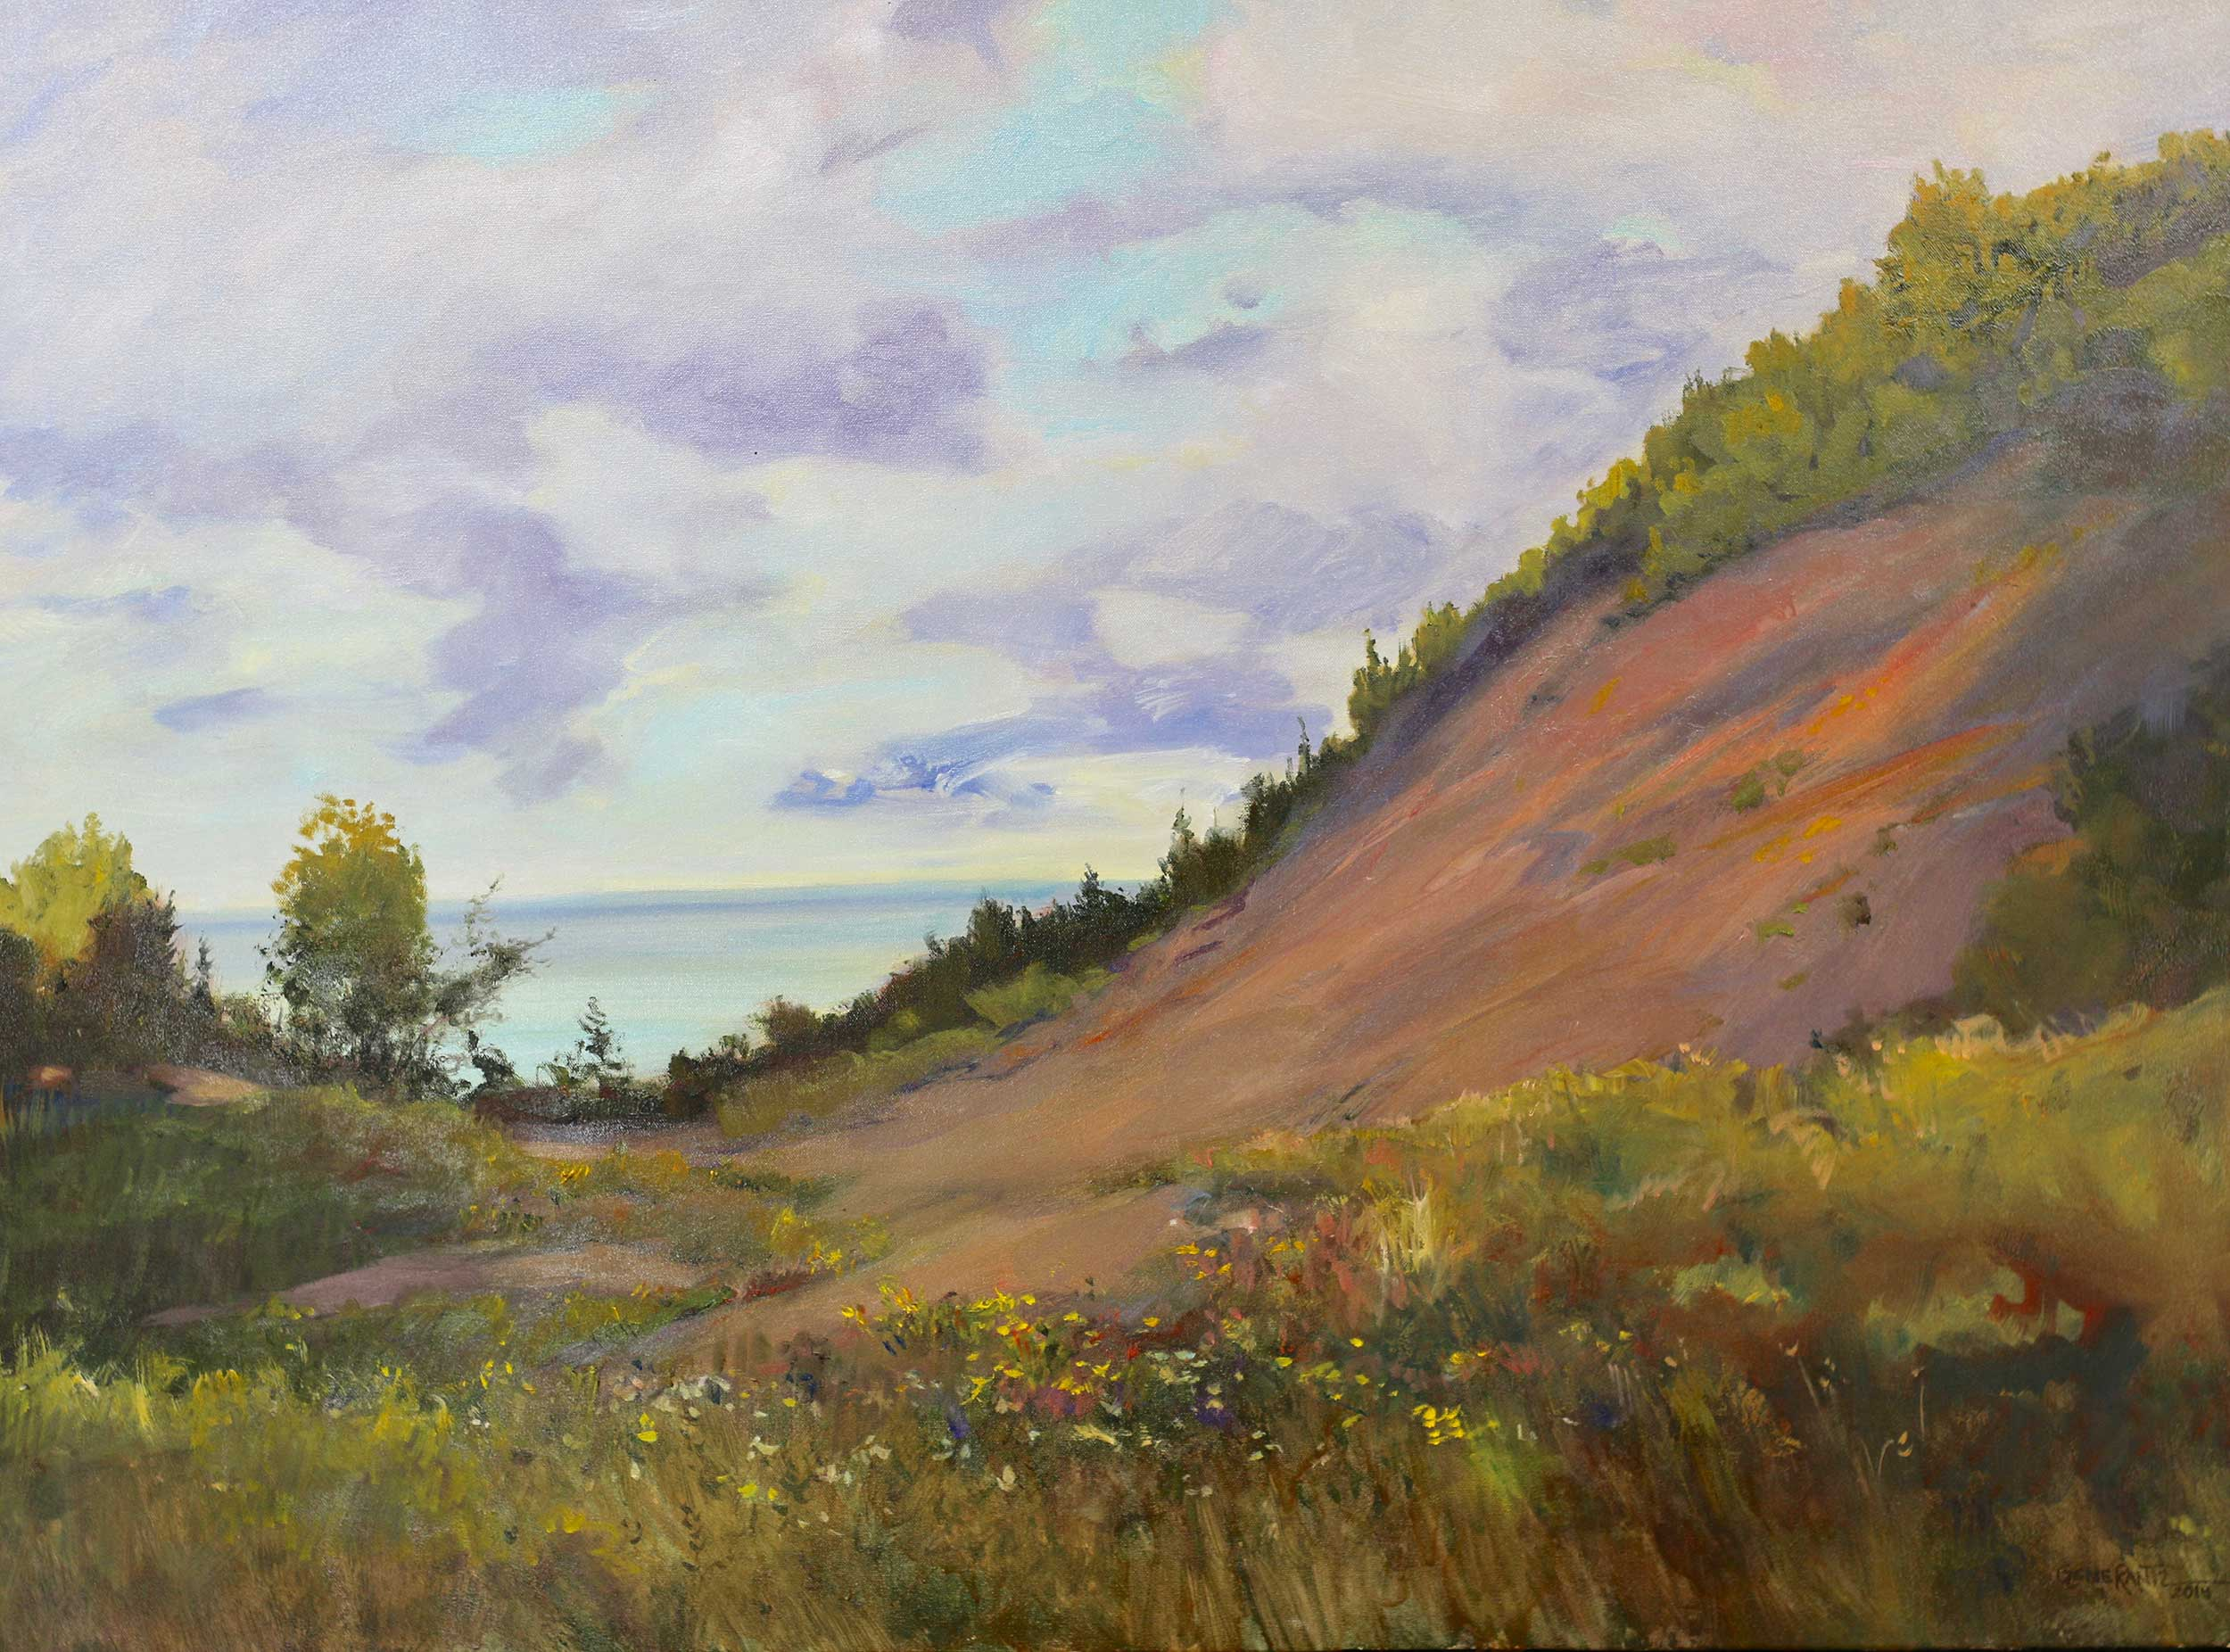 Sand Dune - Peterson Park 30 x 40 Oil On Canvas - S o l d